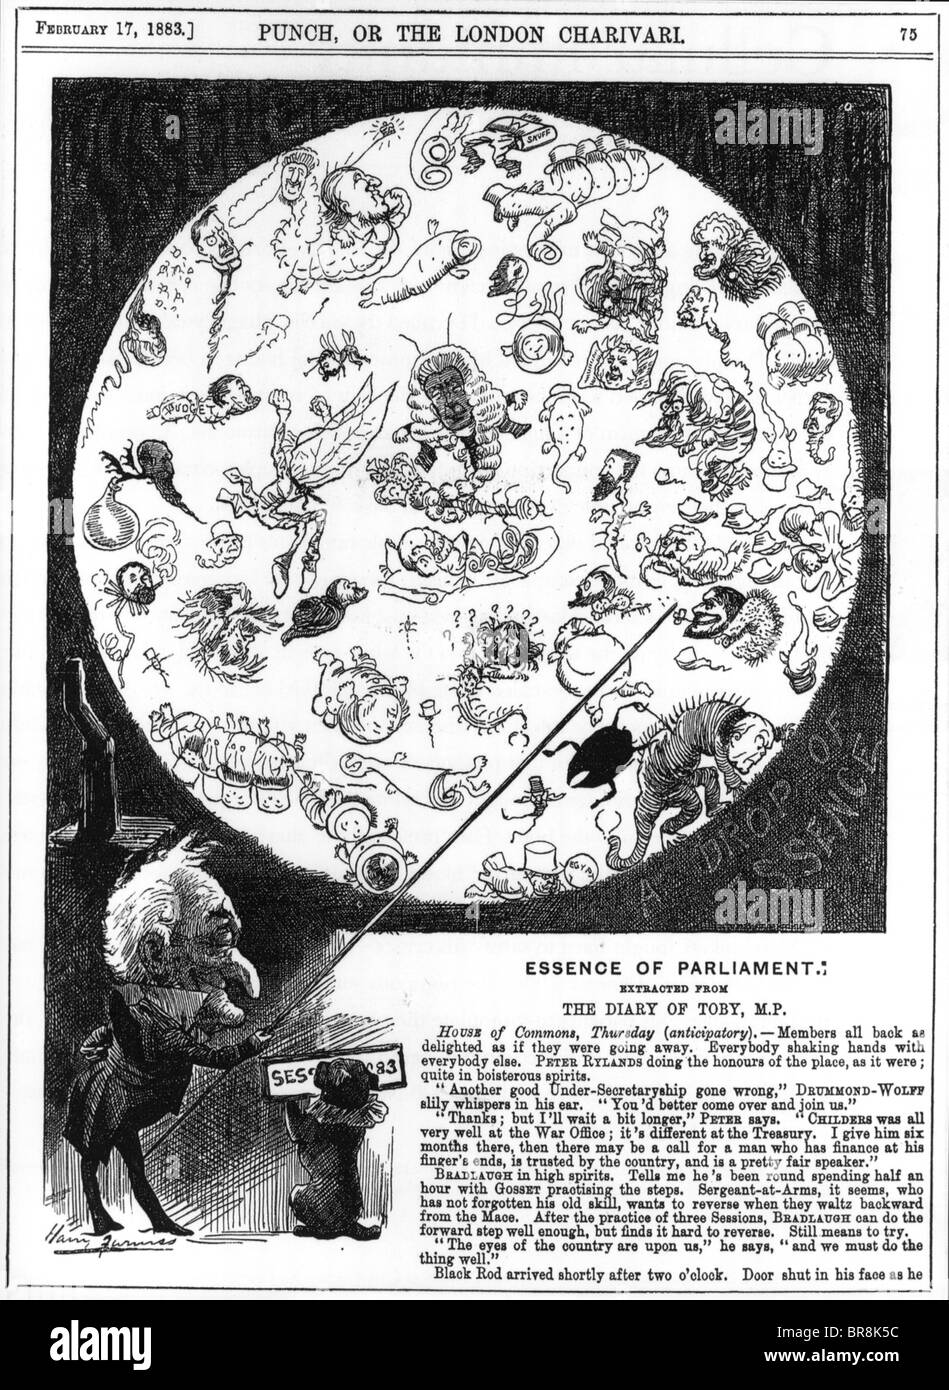 THE ESSENCE OF PARLIAMENT  Punch cartoon of 1883 shows politicians as microscopic life forms - Stock Image